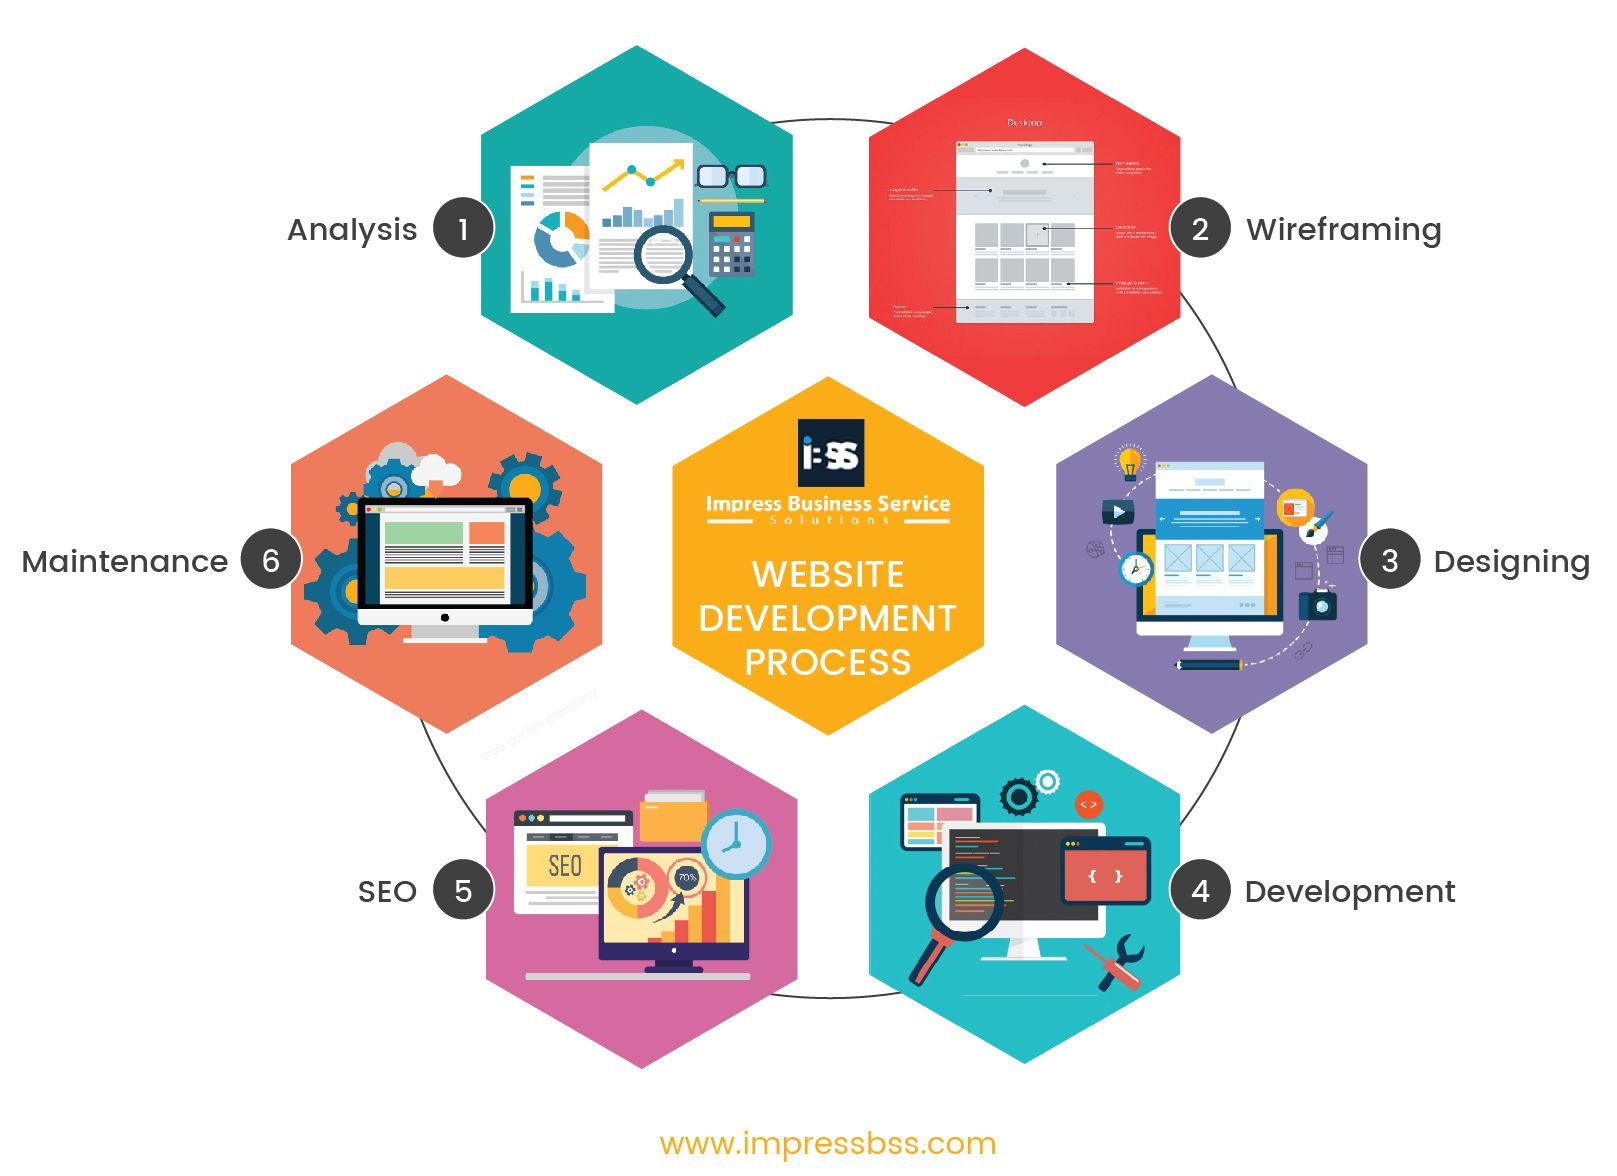 Pin By Impressbss On Infographic Design Web Development Design Web Design Company Website Design